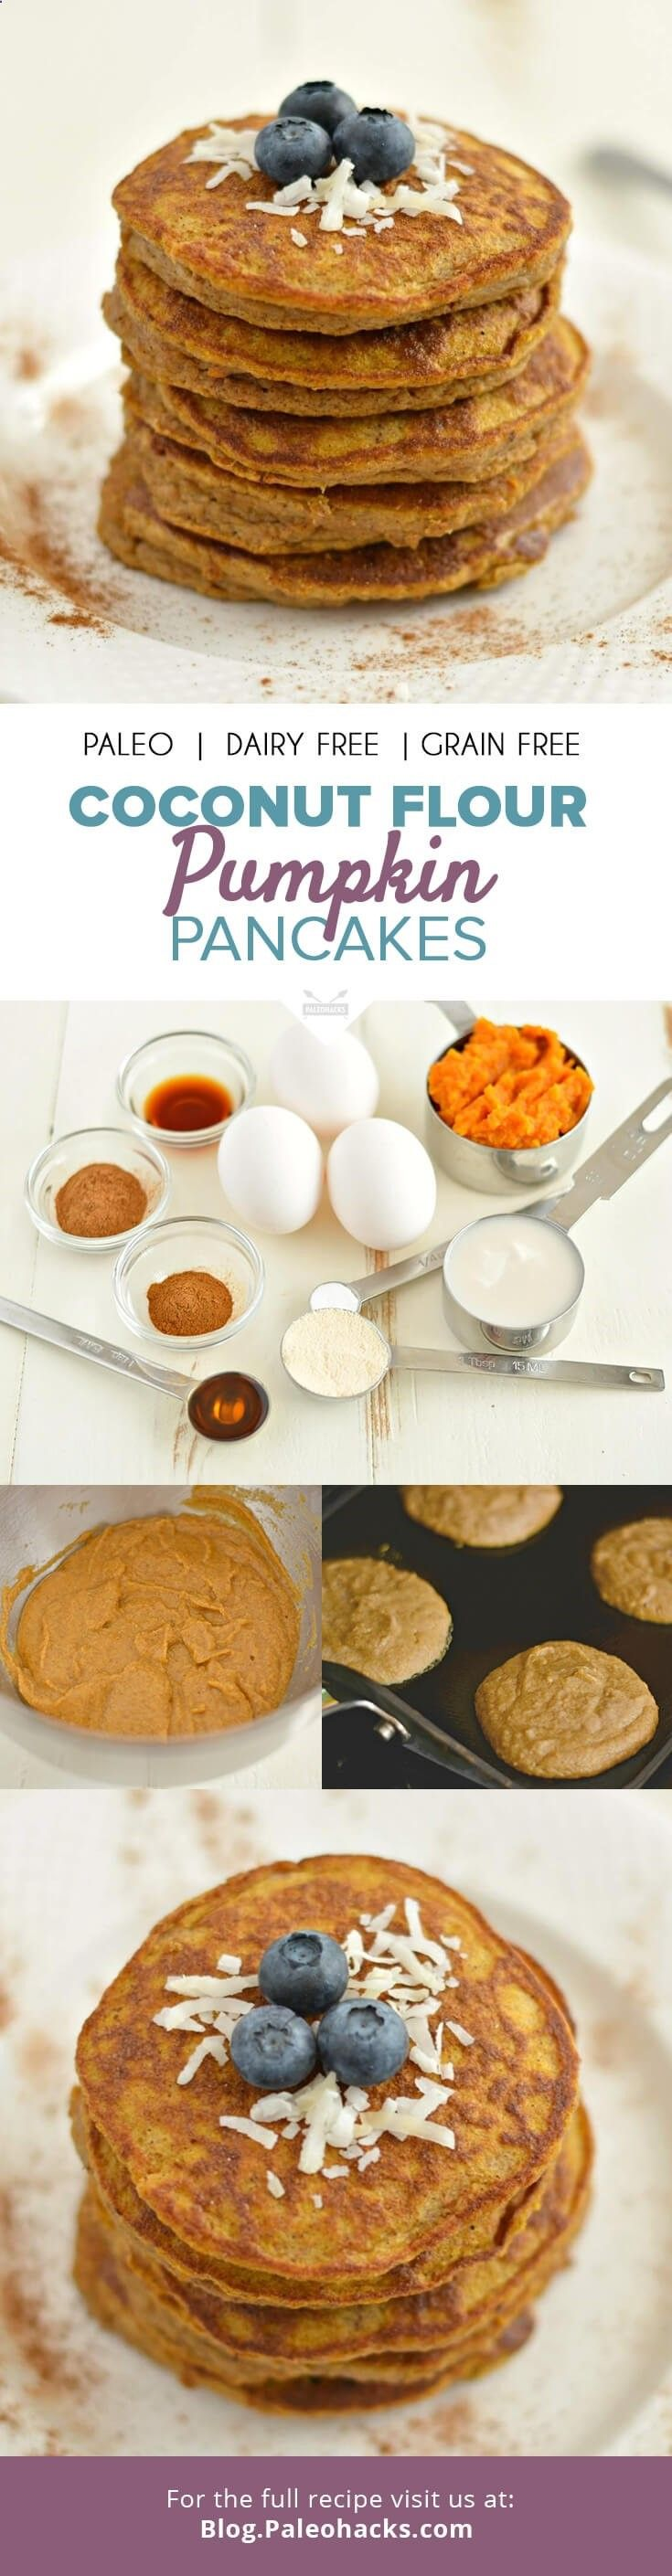 Pumpkin, Pancakes, Paleo, and Protein Combine For the Best Breakfast Ever